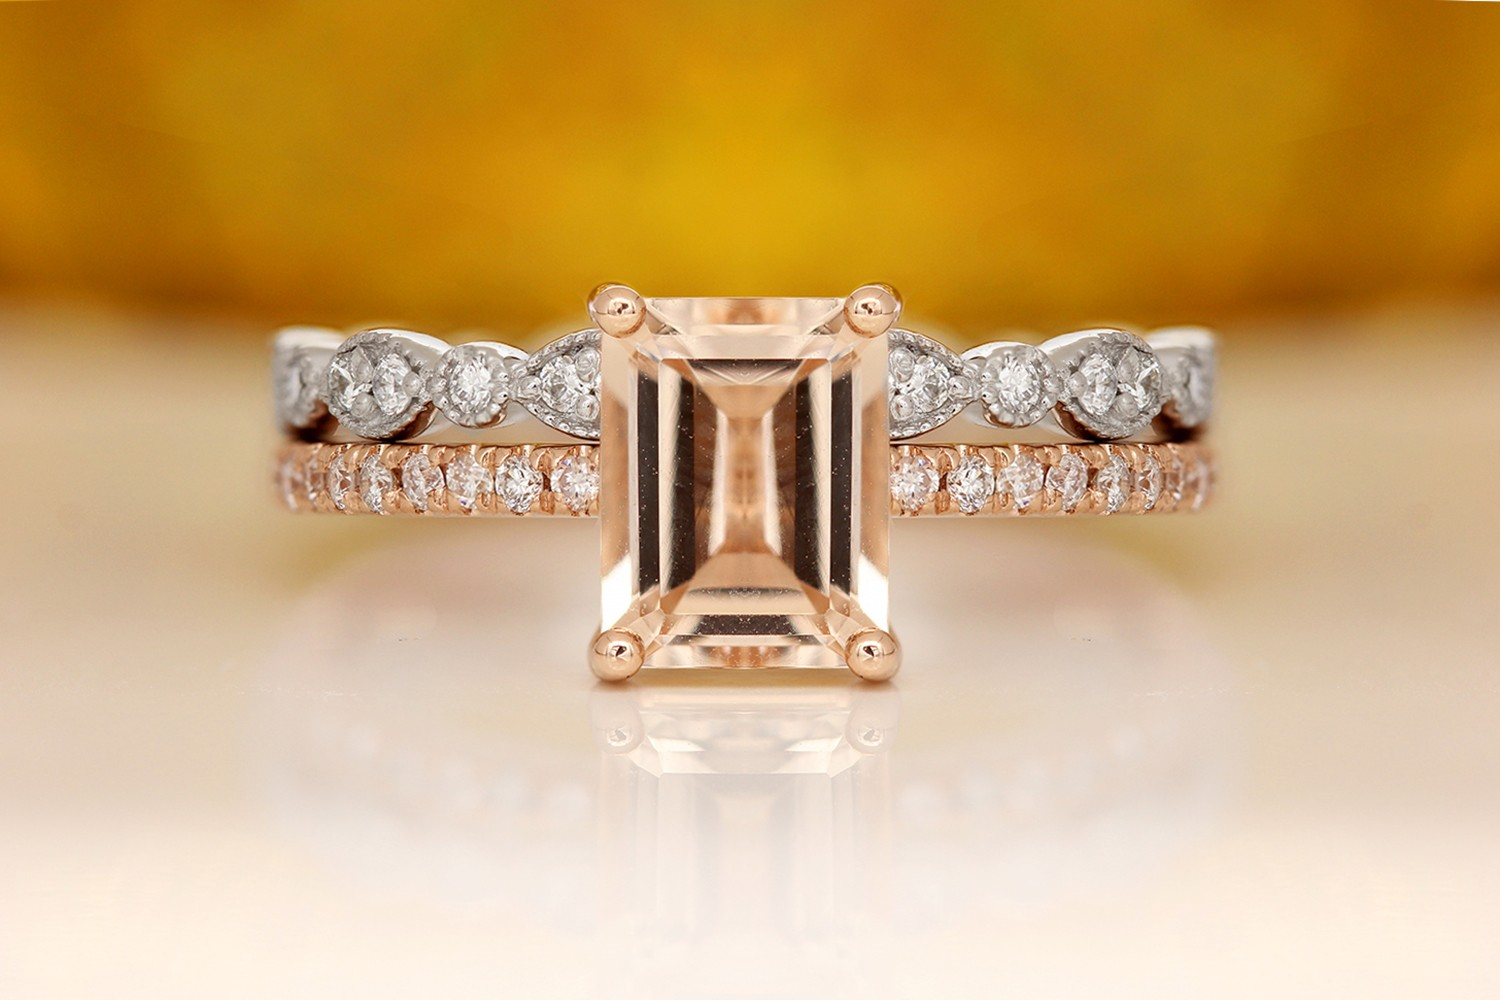 A Buying Guide to Morganite Engagement Rings